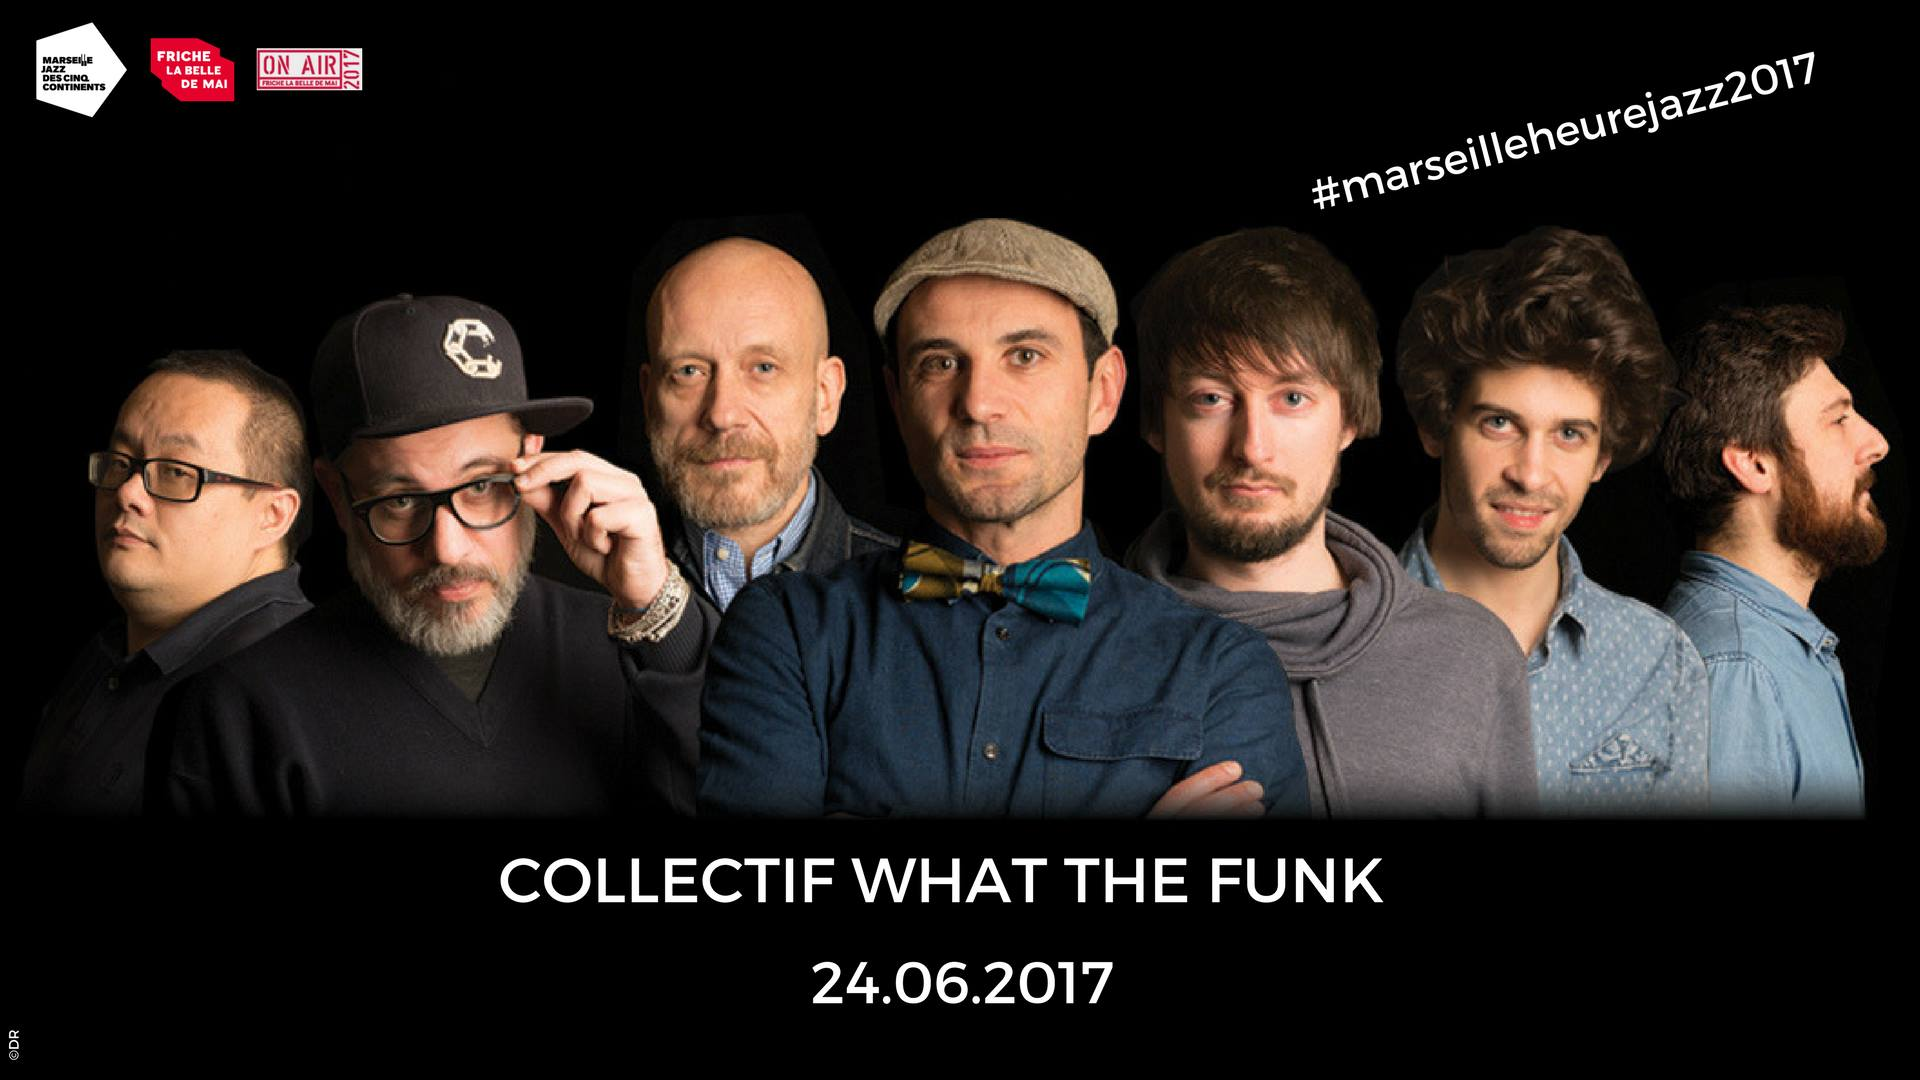 soiree on air friche belle de mai collectif what the funk